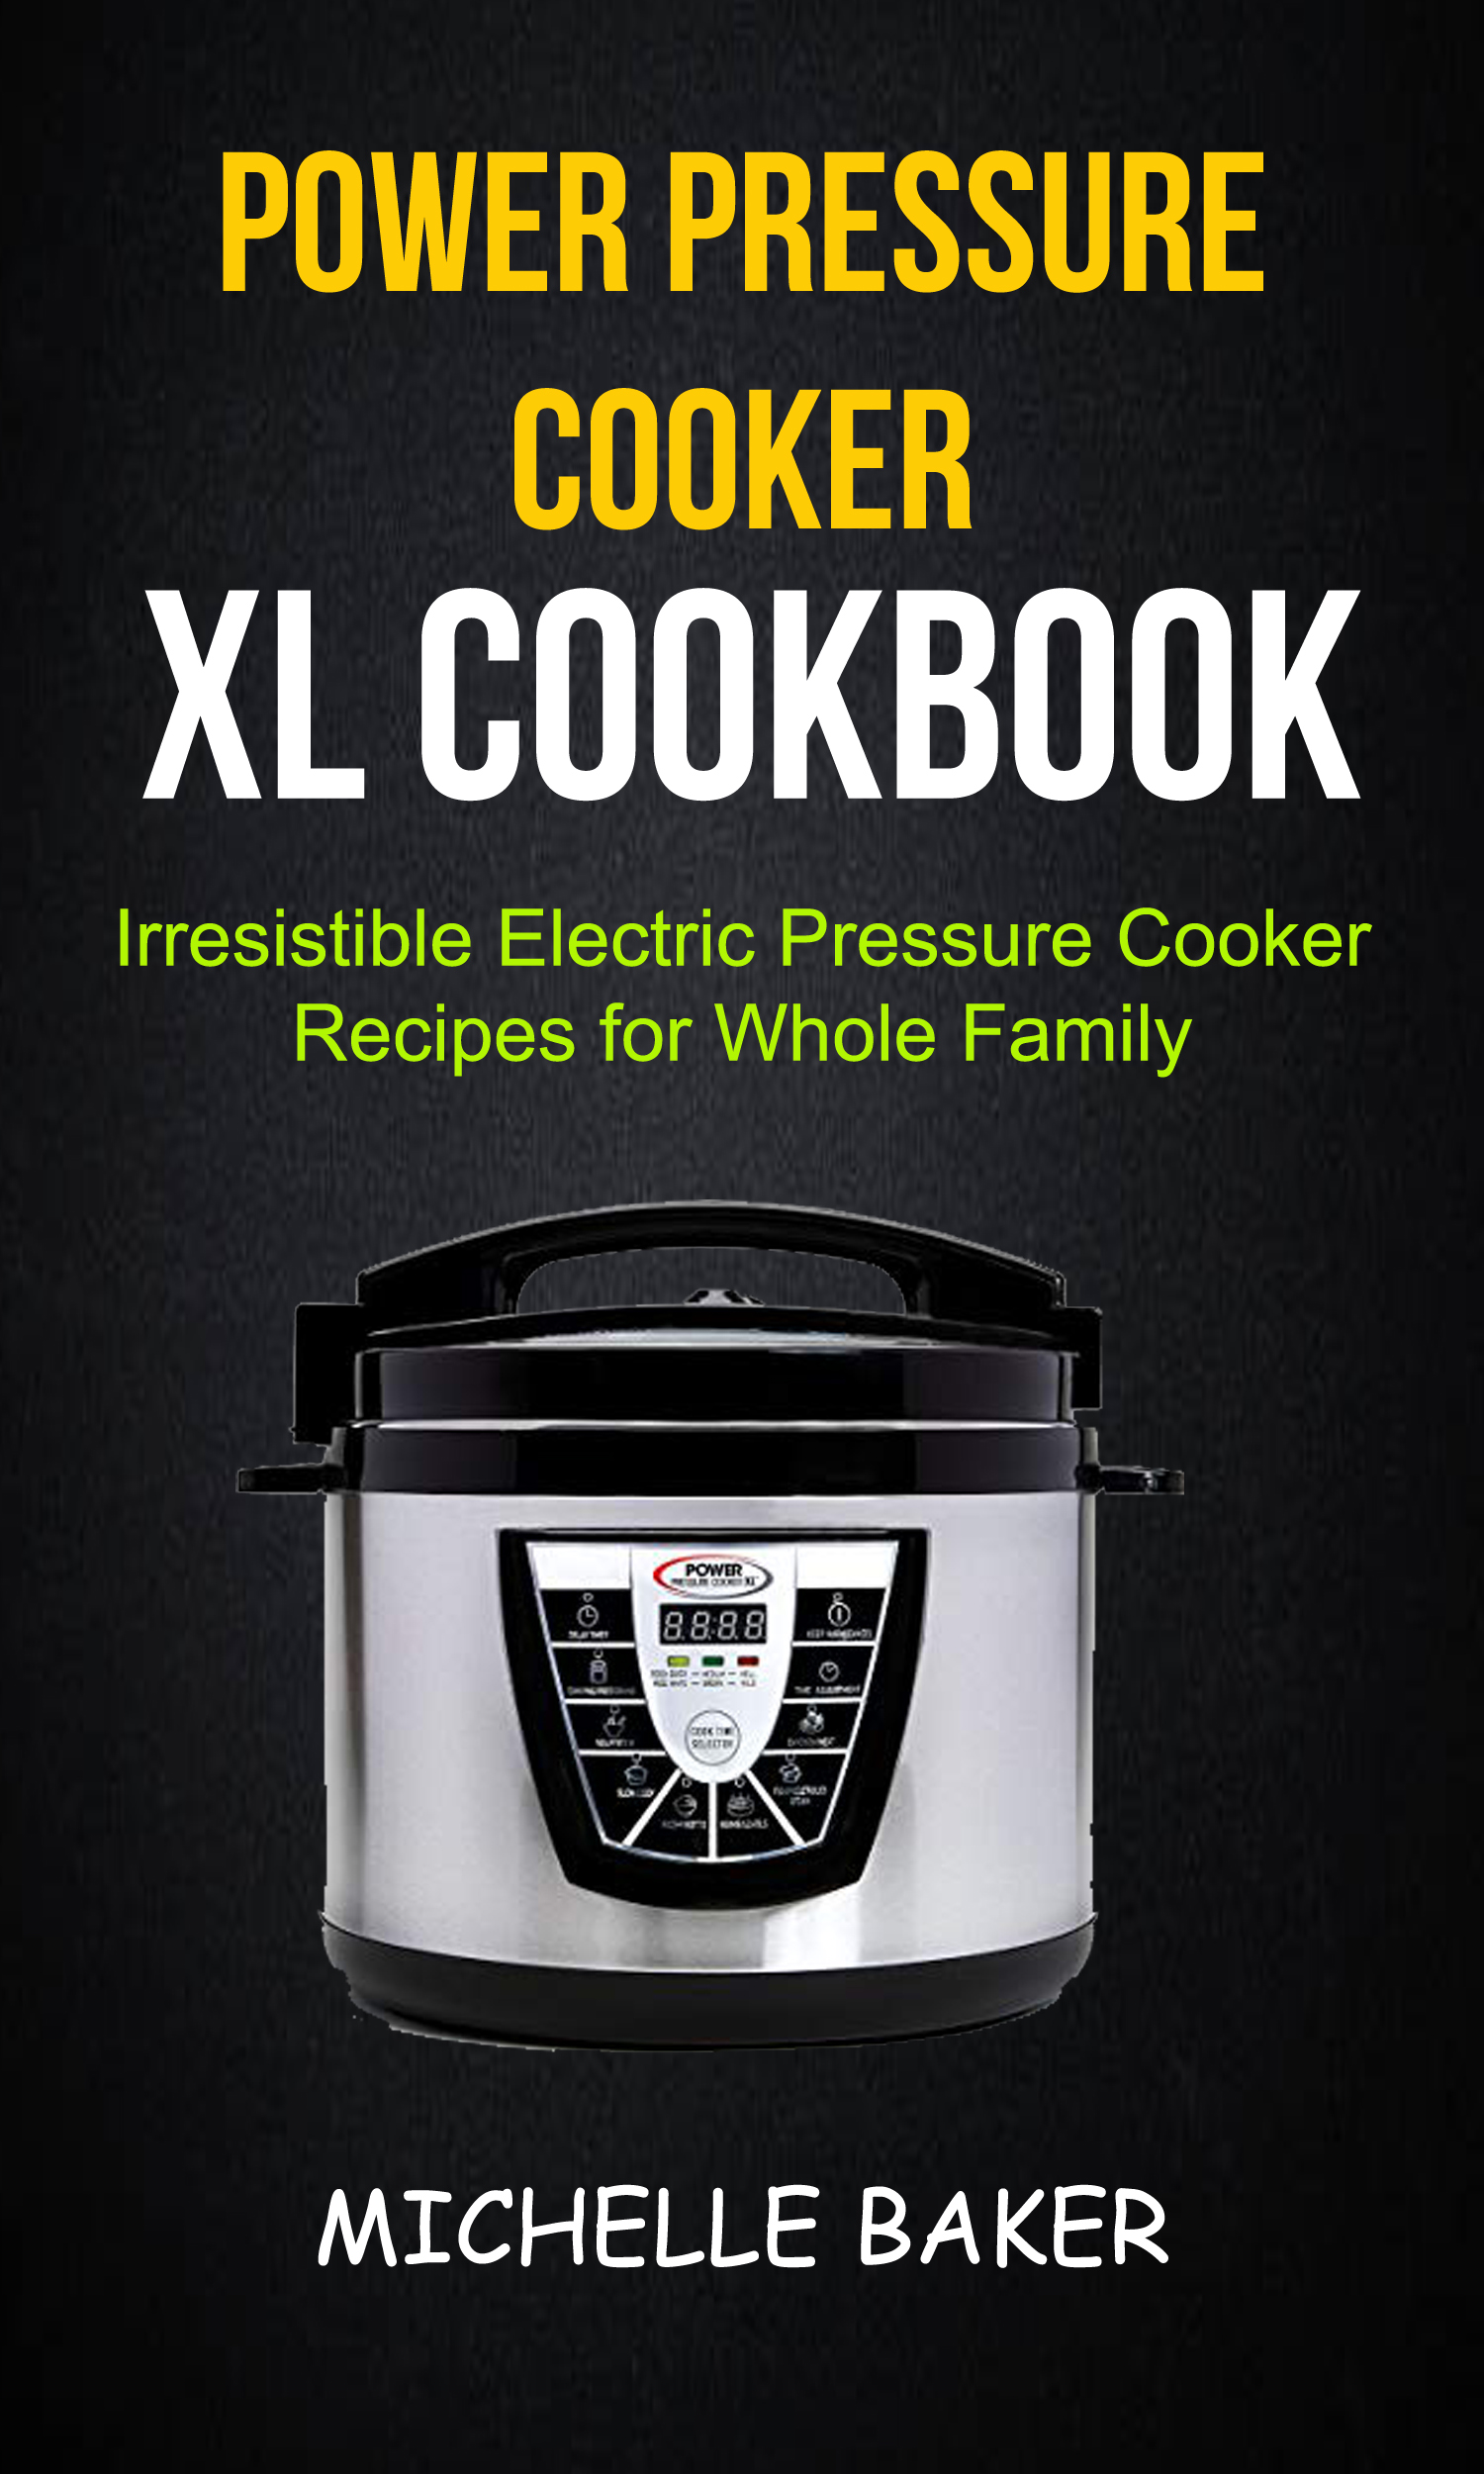 Power pressure cooker xl cookbook: irresistible electric pressure cooker recipes for whole family